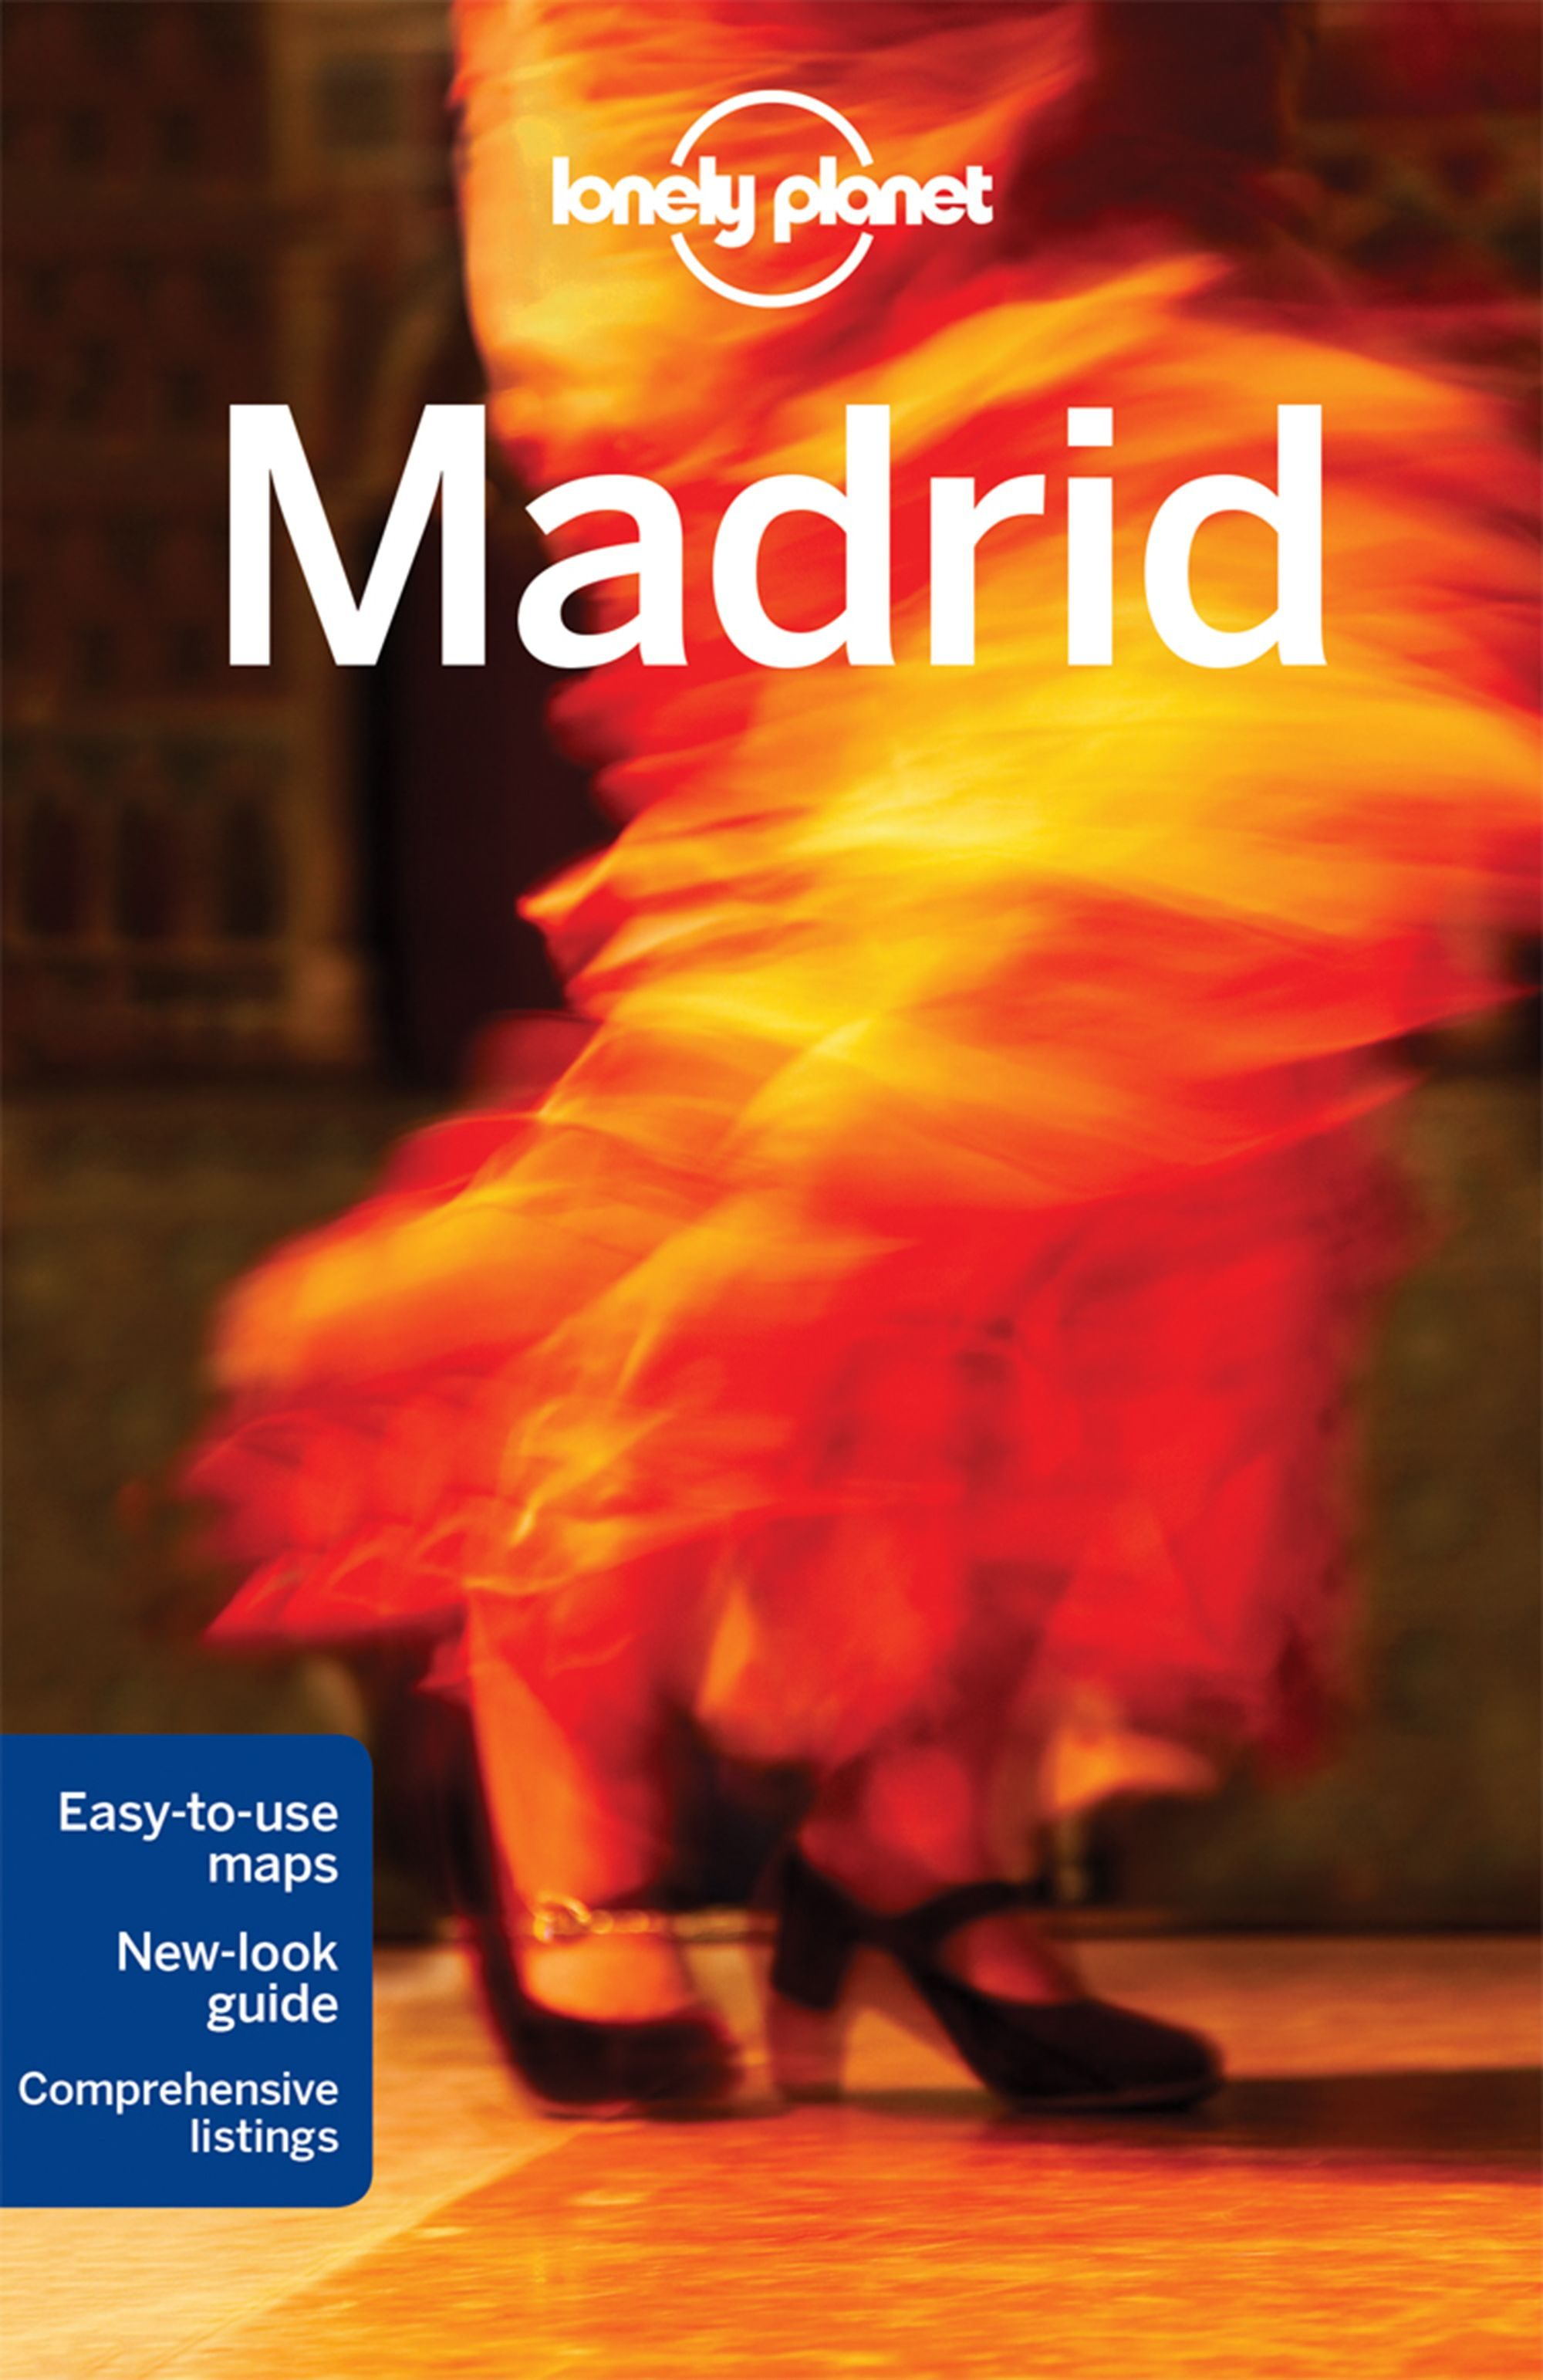 Lonely Planet Madrid (Travel Guide) (libro en inglés) - Lonely Planet - Lonely Planet